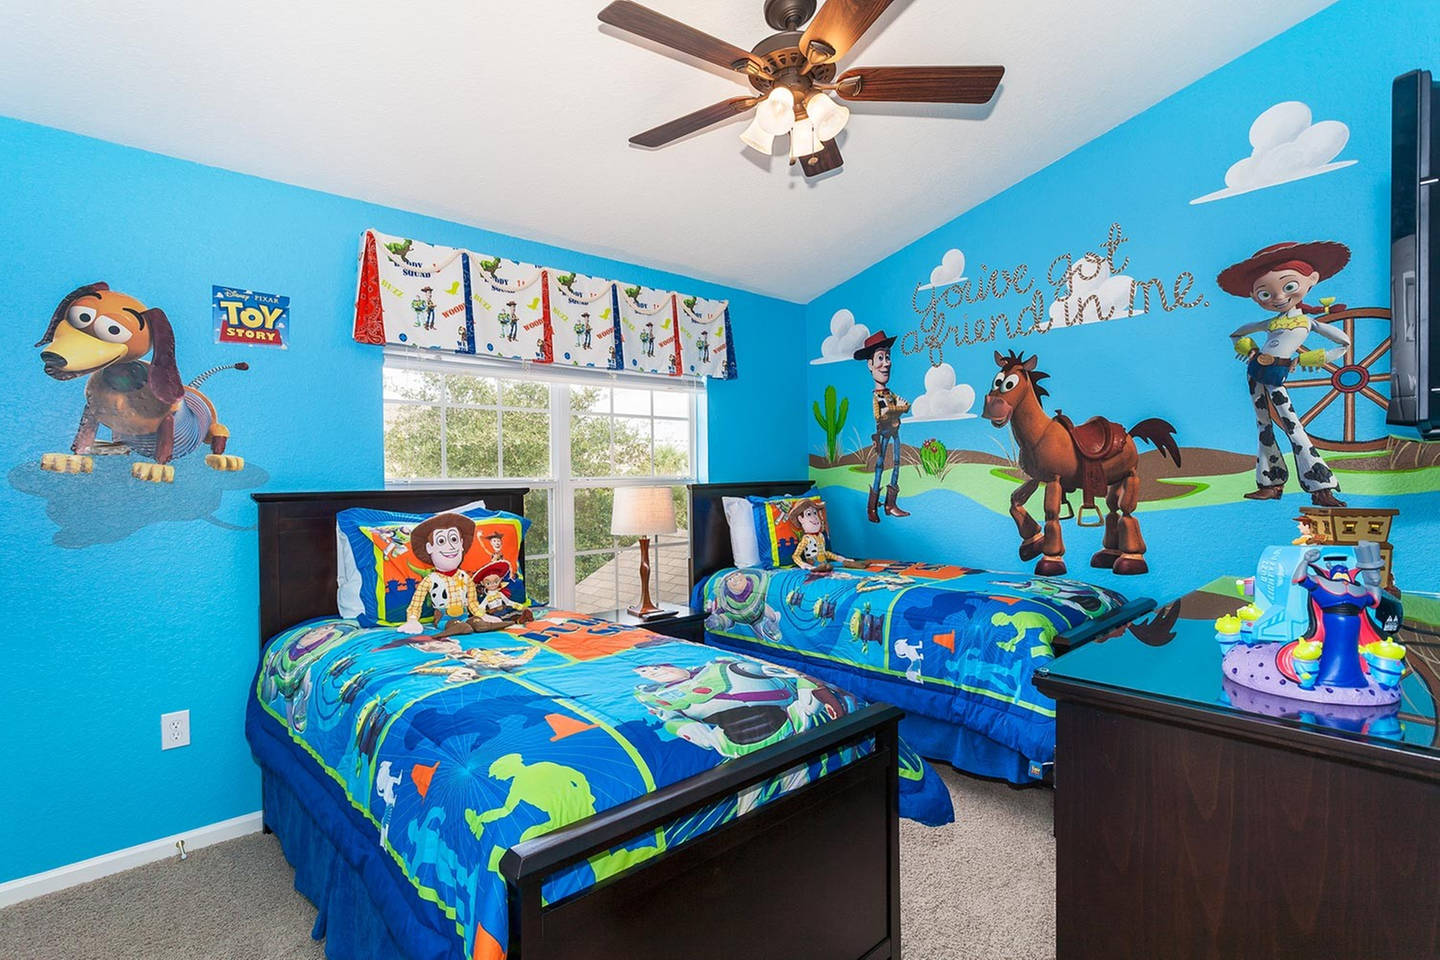 Creative Kids Bedroom Toy Story Inspired Room